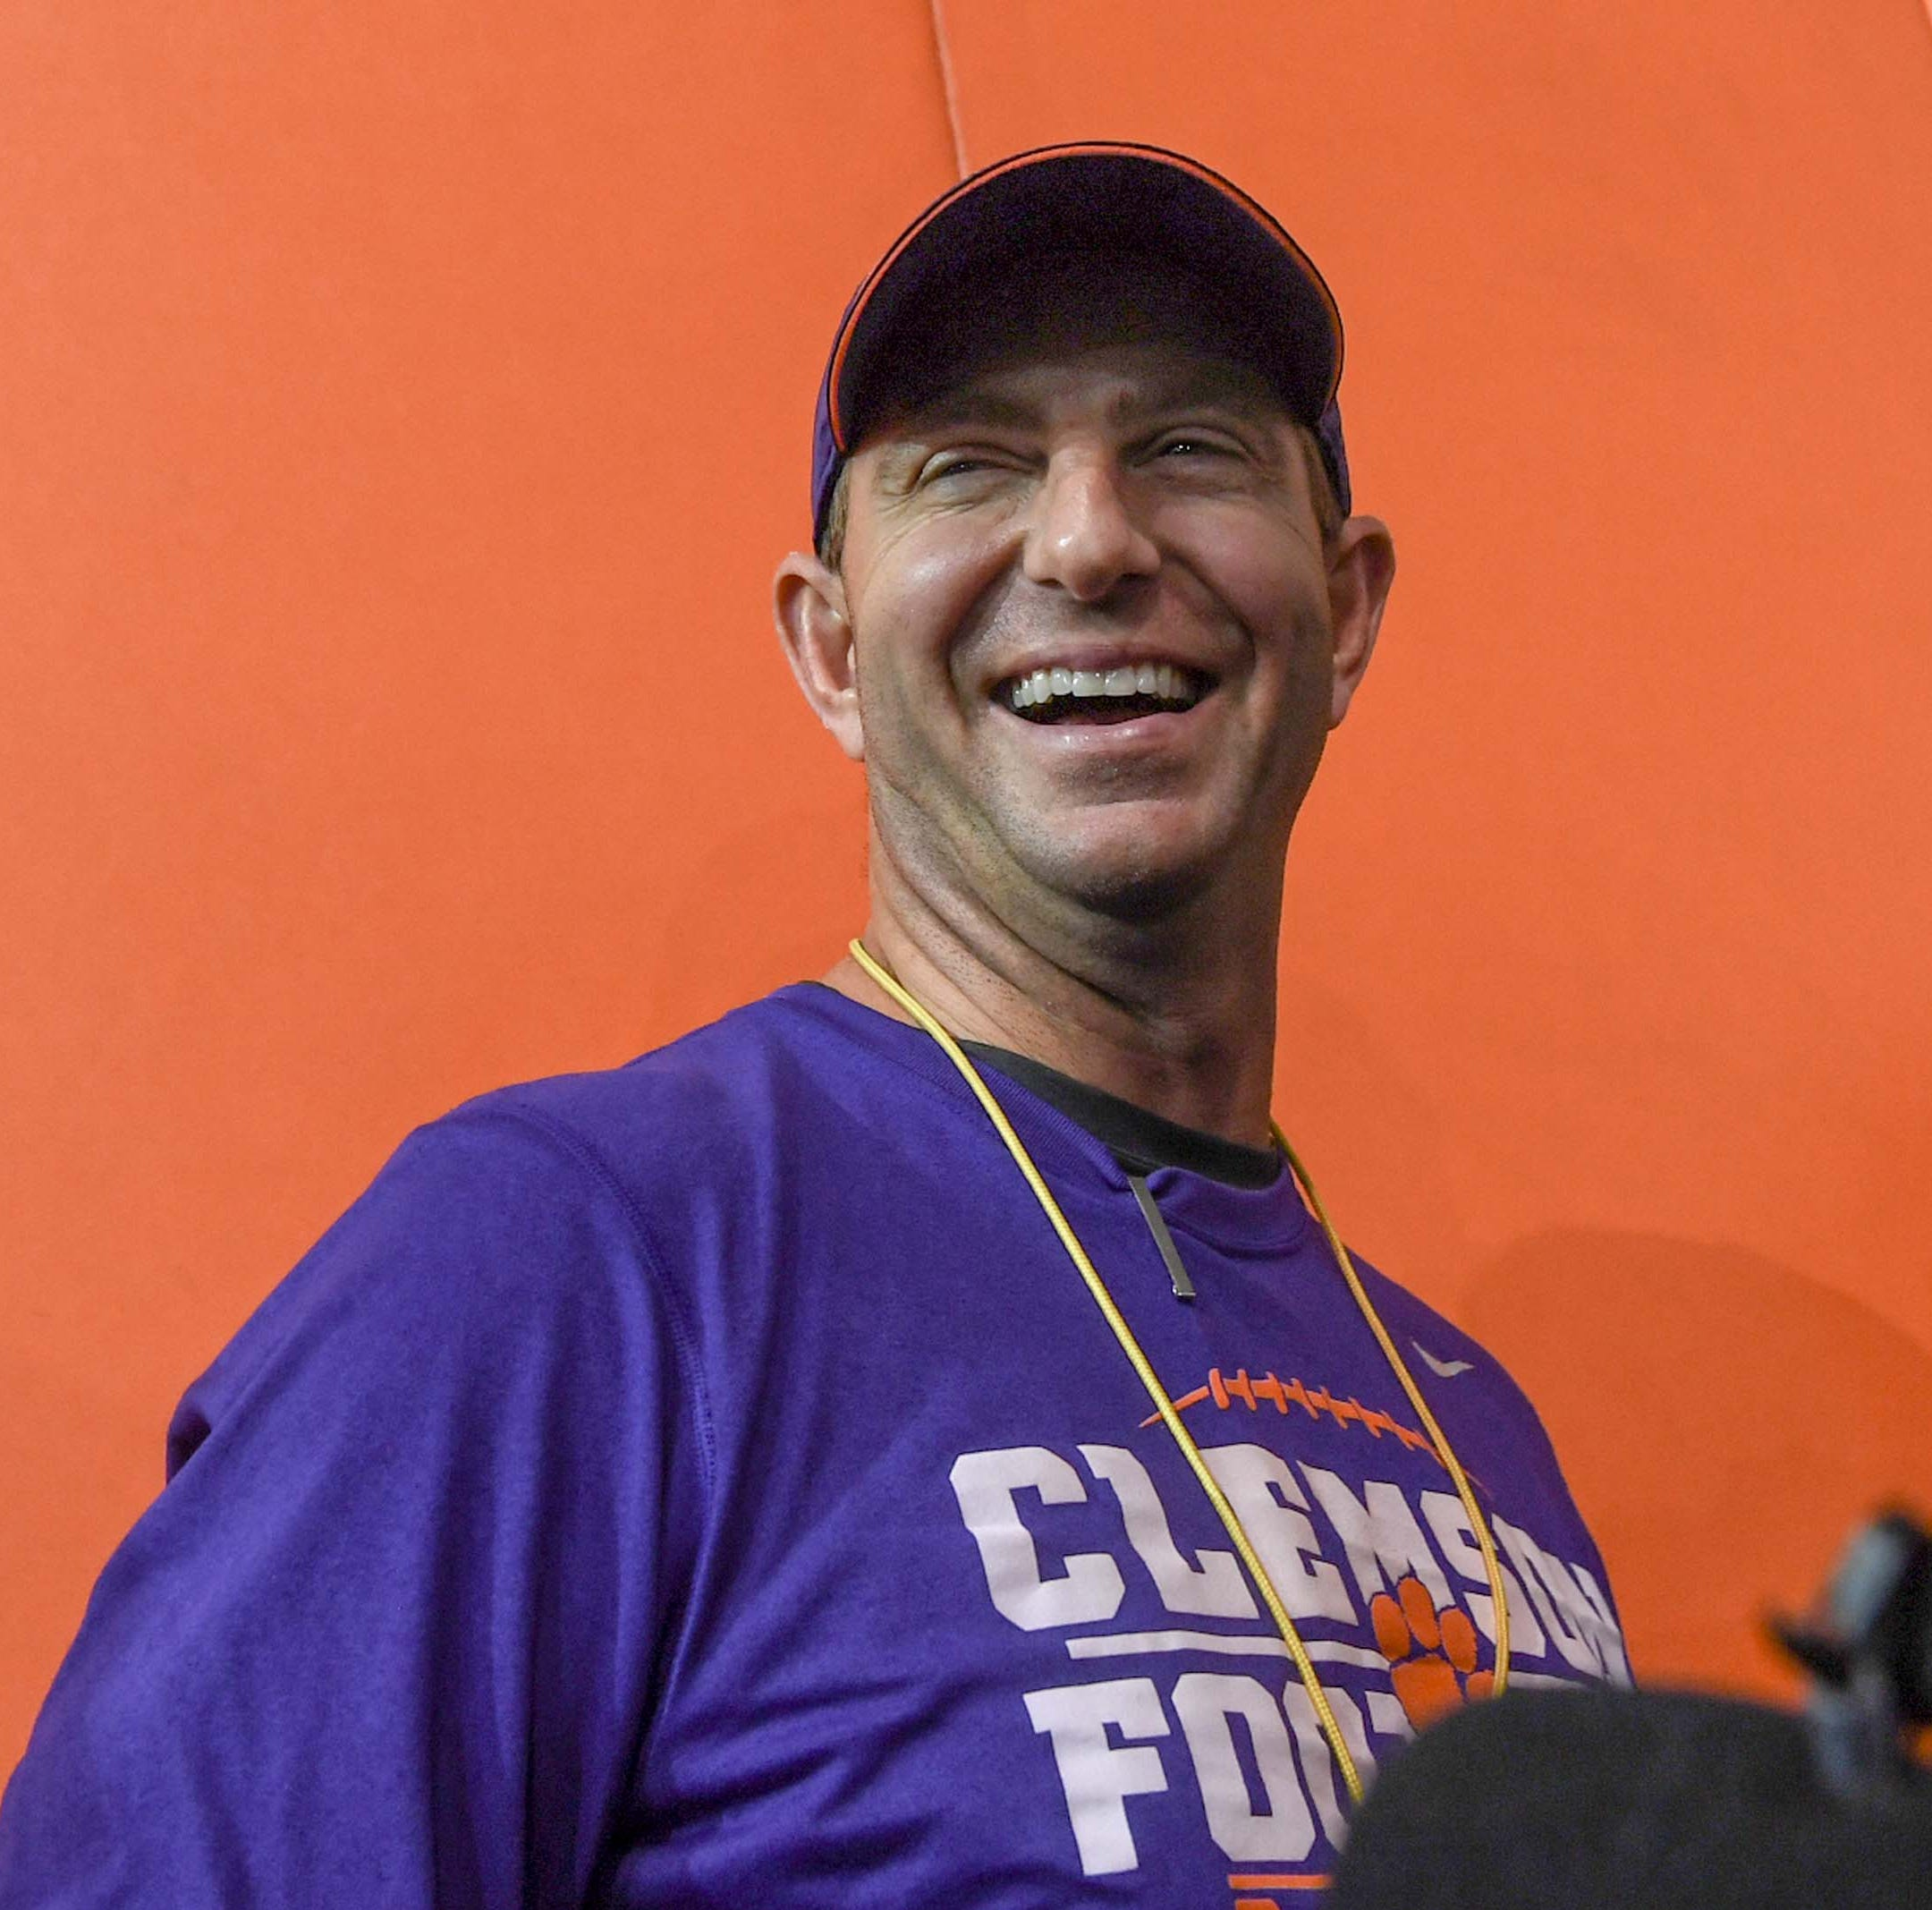 Clemson football could soon add another 5-star recruit